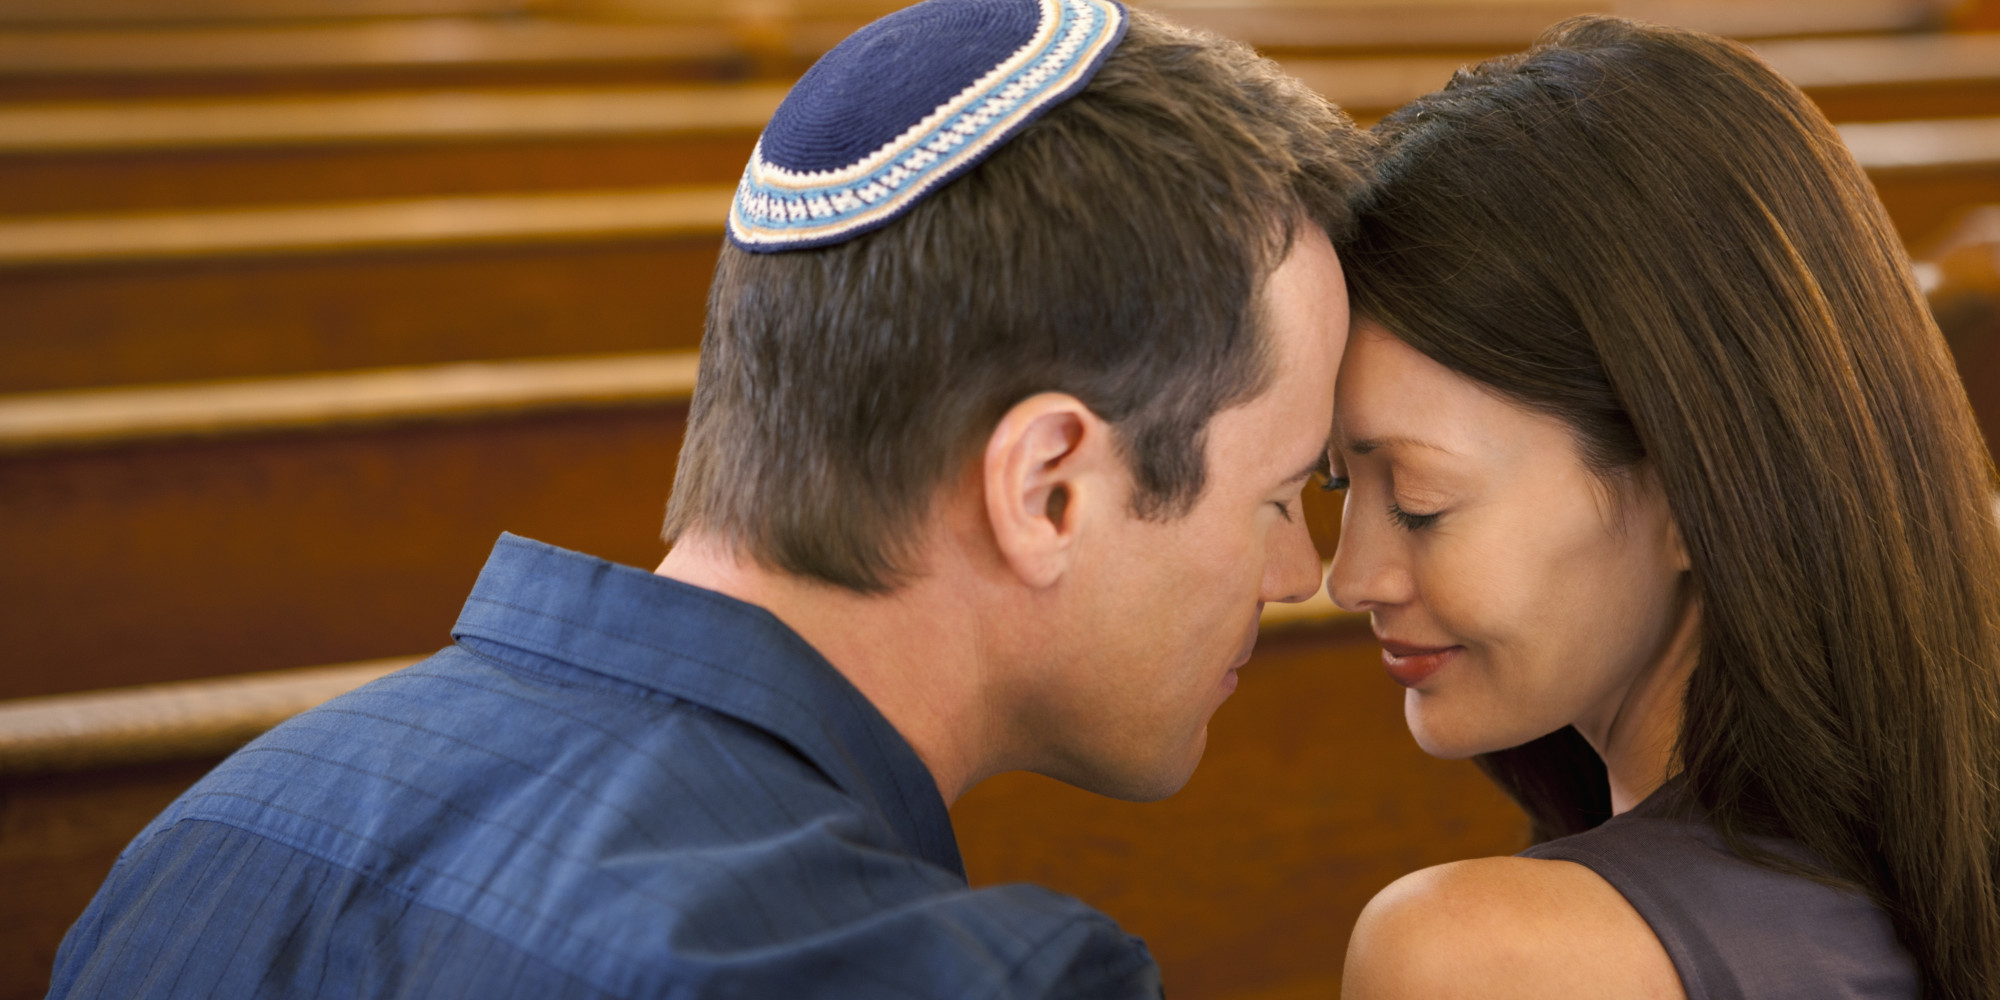 Jewish man dating non jewish woman